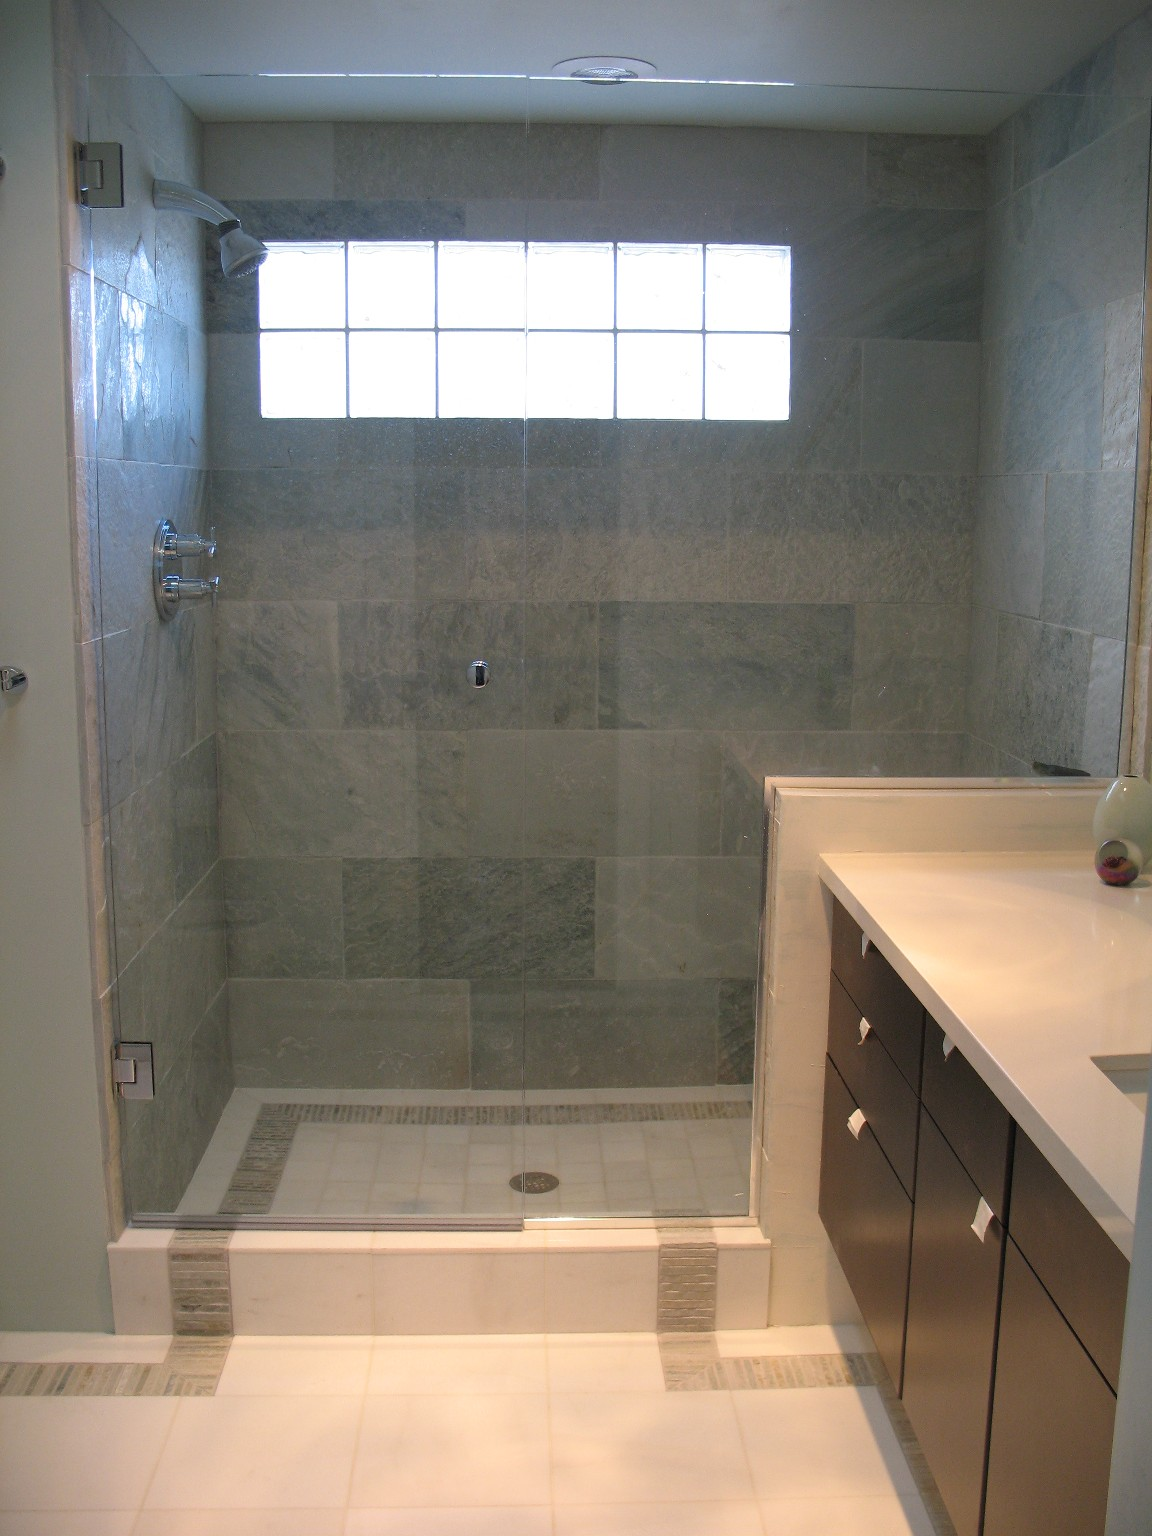 33 amazing ideas and pictures of modern bathroom shower for Small bathroom designs with shower and tub